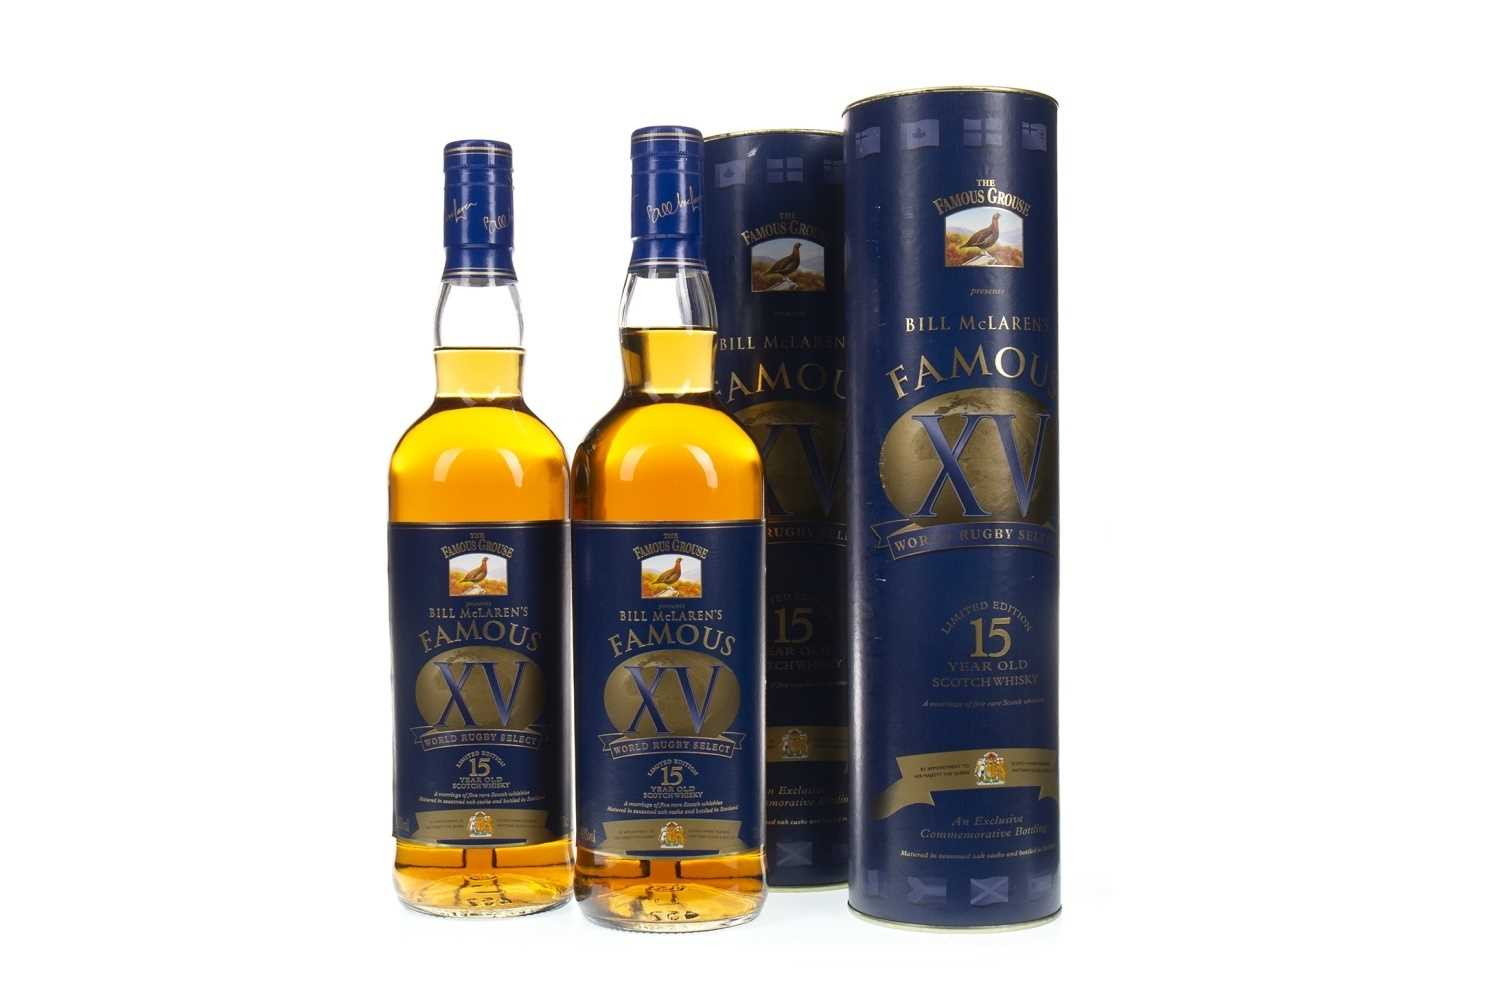 Lot 401-TWO BOTTLES OF FAMOUS GROUSE BILL MCLAREN'S FAMOUS XV 15 YEARS OLD